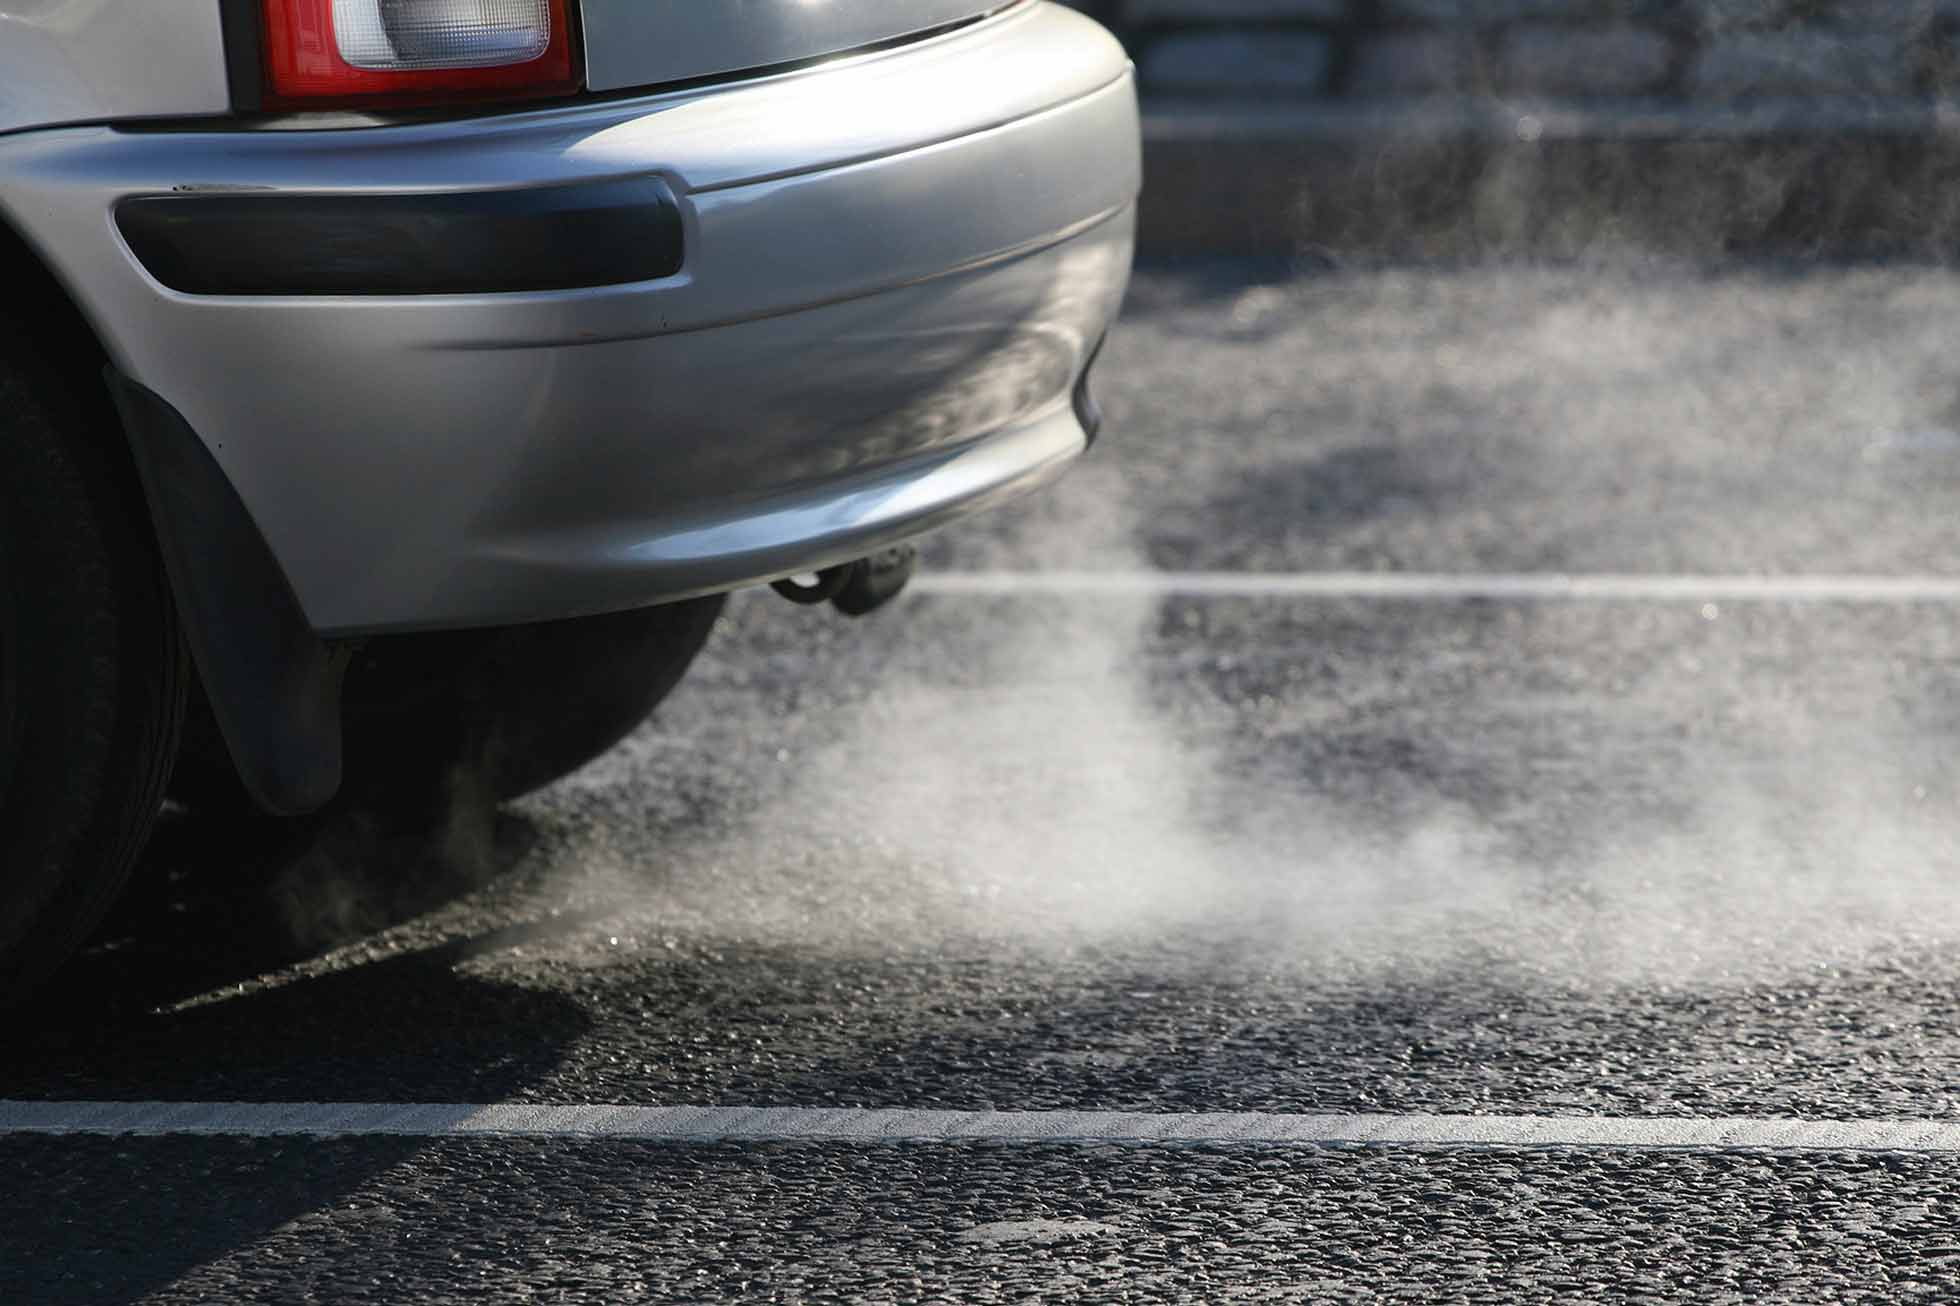 MPs call for Low Emission Zones in cities